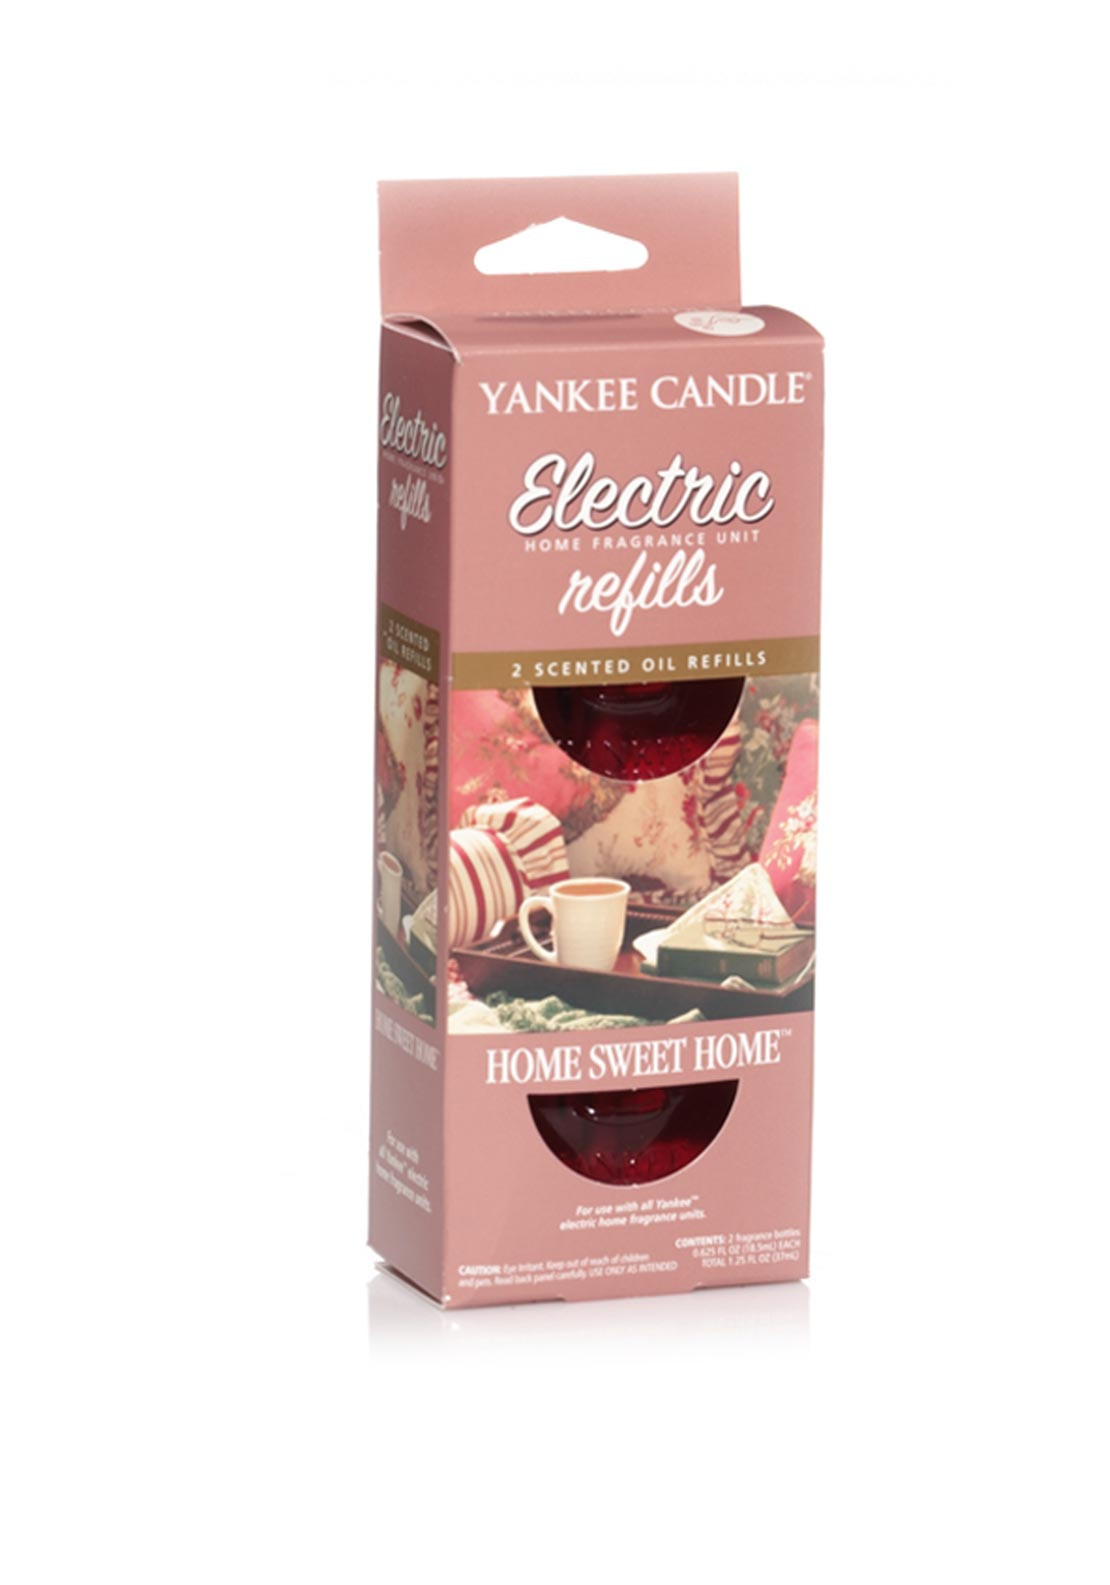 Yankee Candle Electric Fragrance Refills, Home Sweet Home